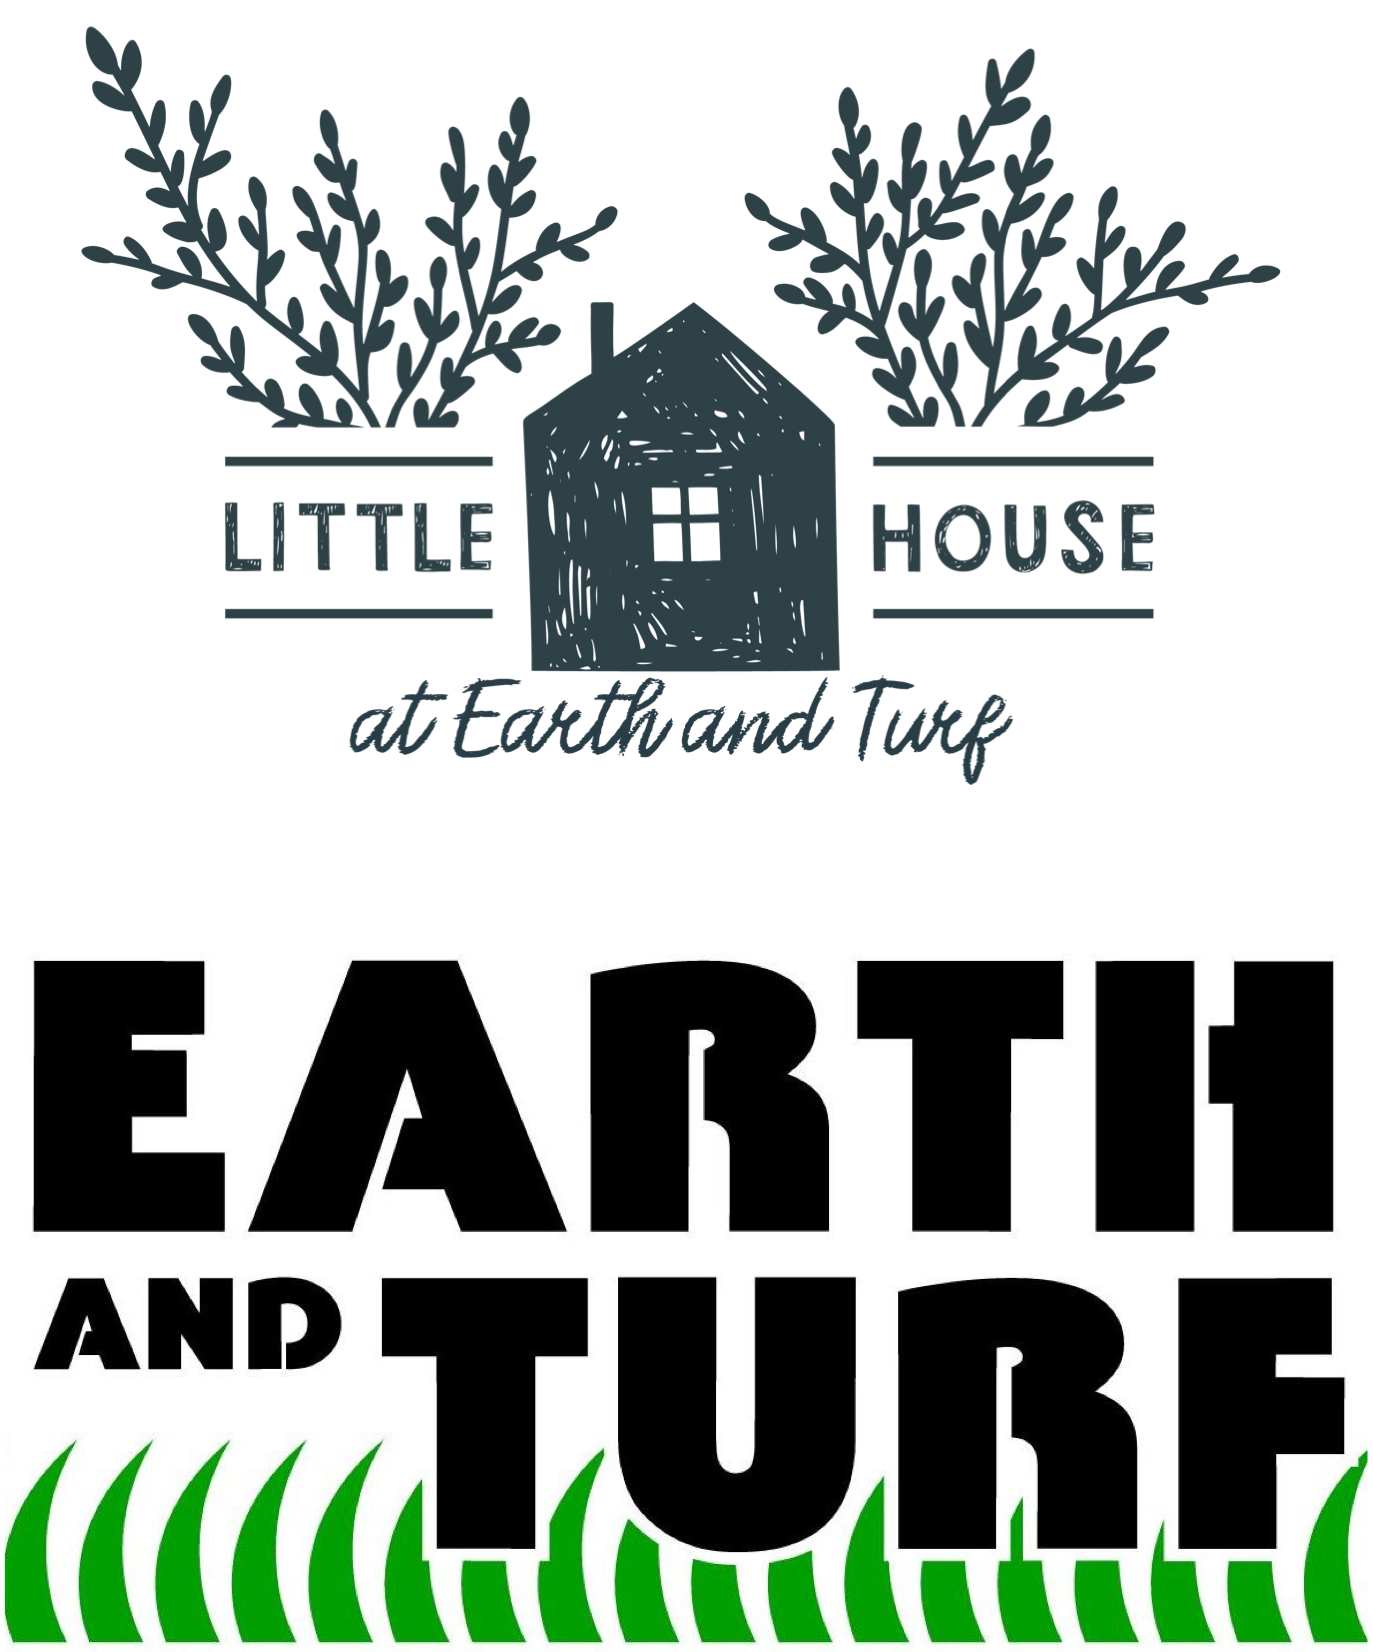 Earth and Turf and The Little House at Earth & Turf